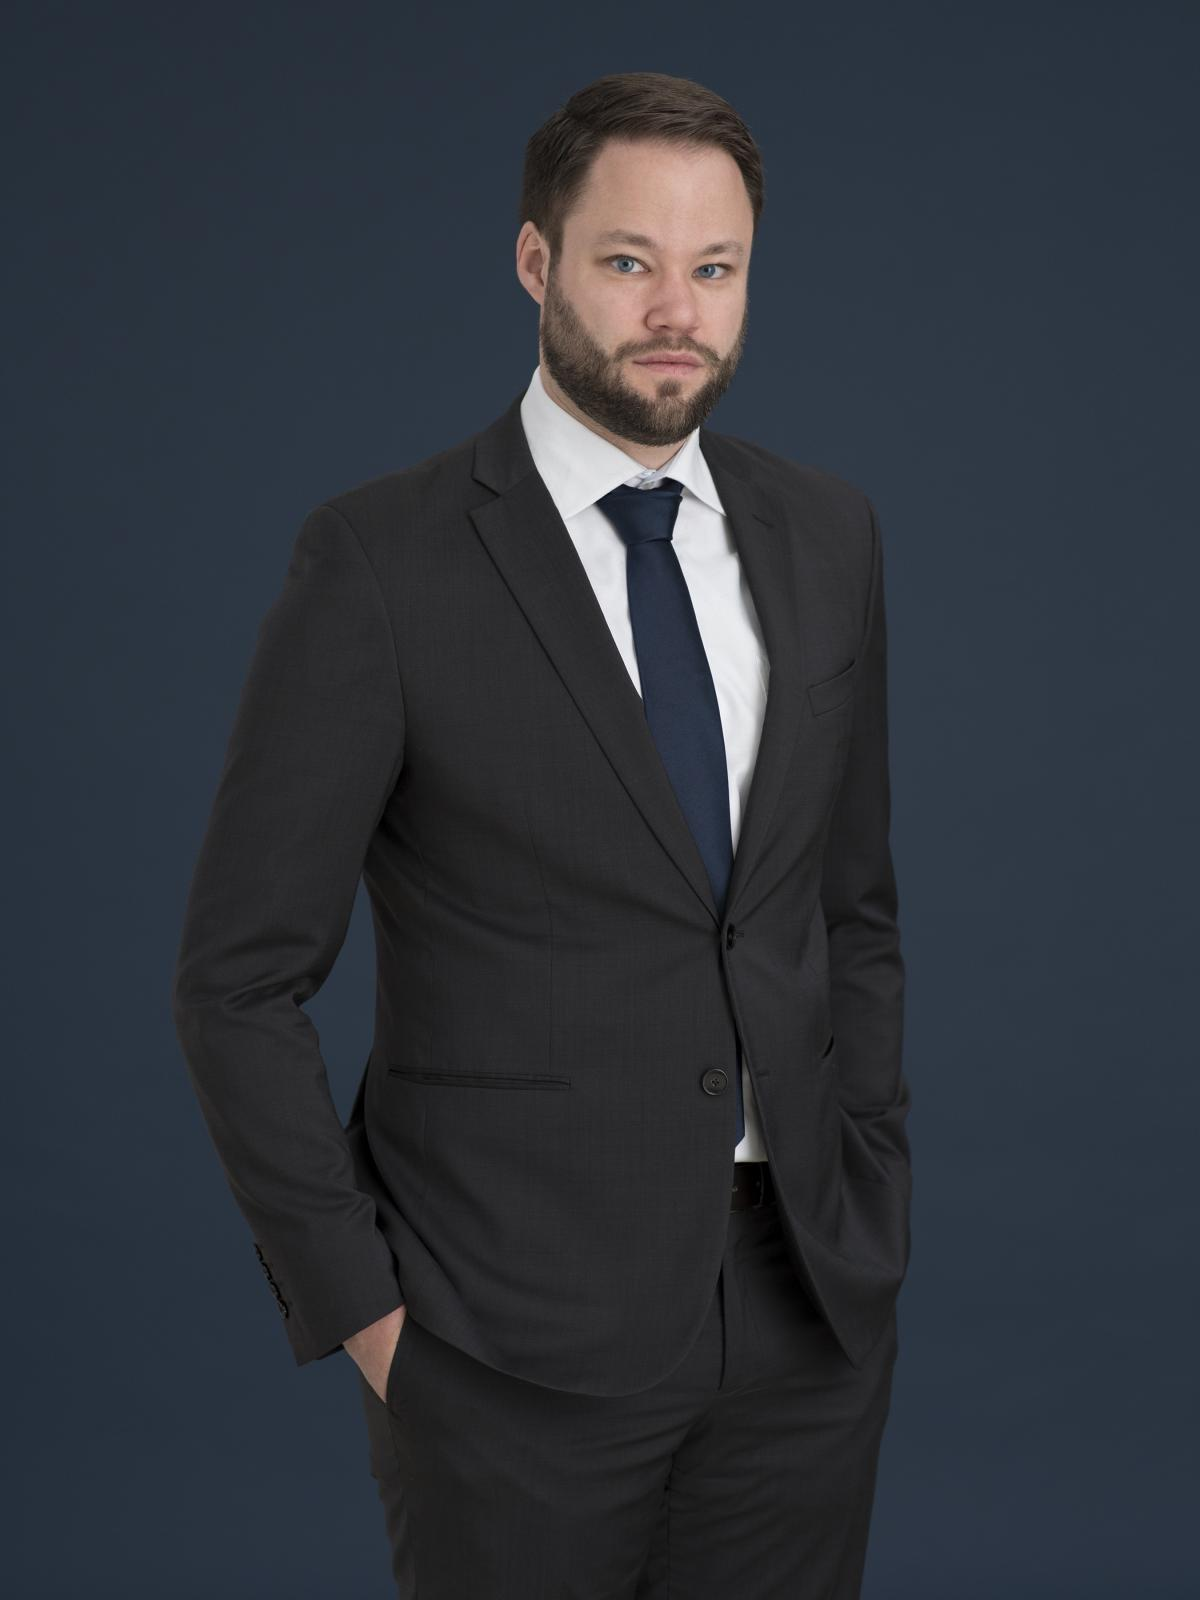 lic. iur. Jan Berchtold - Attorney-at-Law